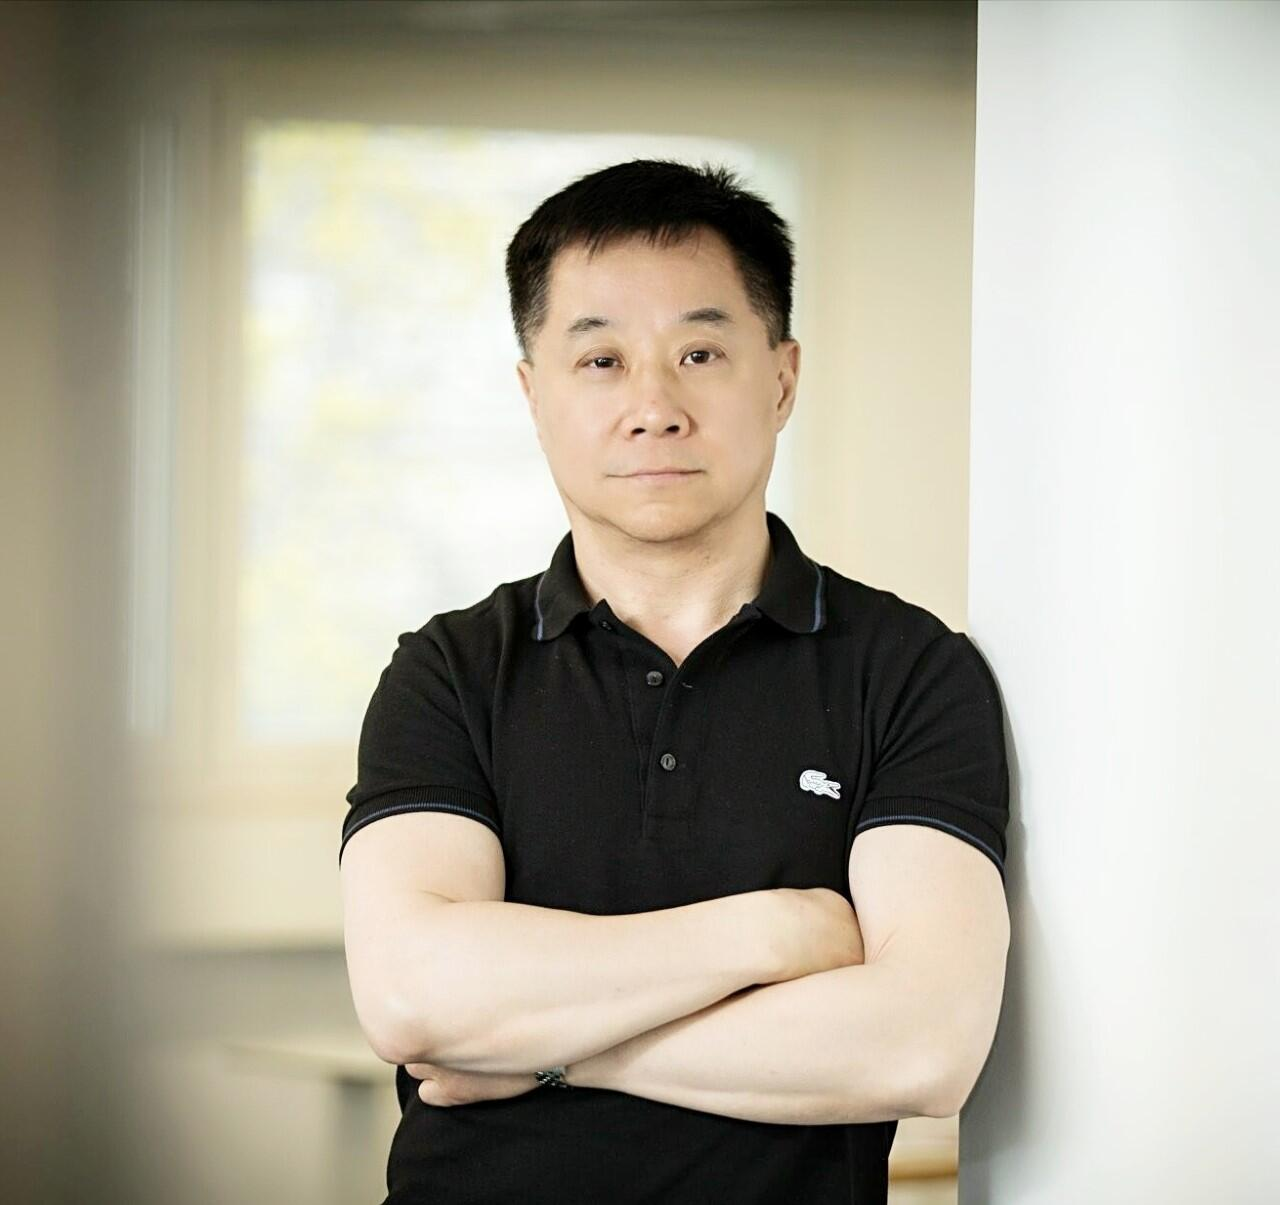 Fuping's profile picture